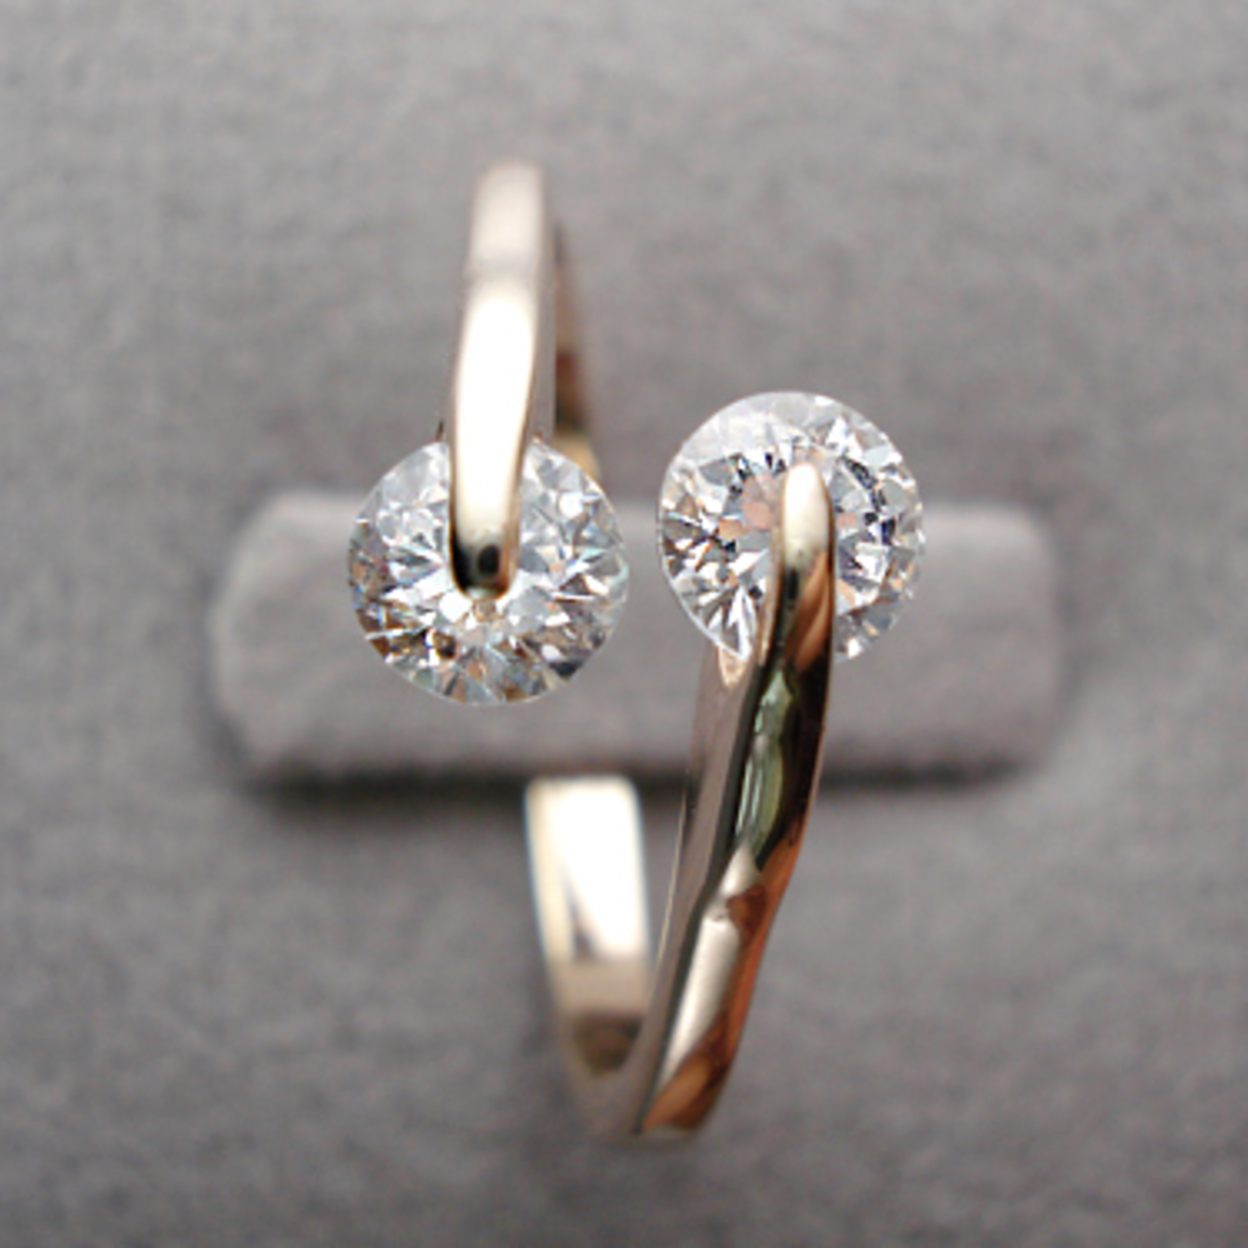 Twin Top18k Gold Plated With Zircon Simulated Diamond Ring 6, Sterling Silver Plated